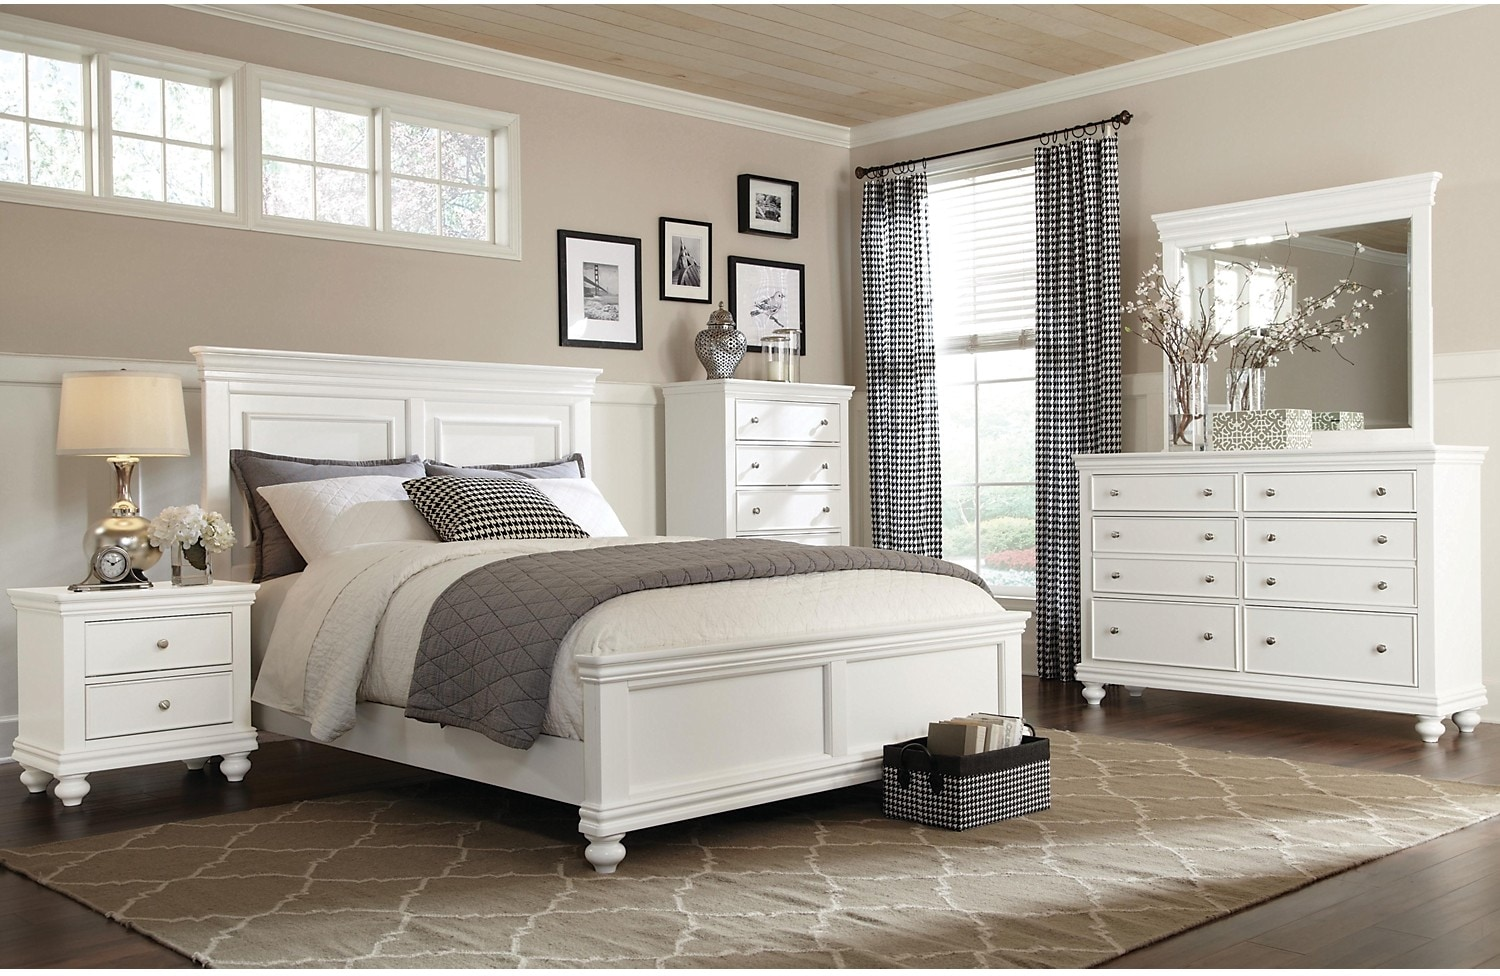 Bedroom Furniture - Bridgeport 7-Piece King Bedroom Set – White